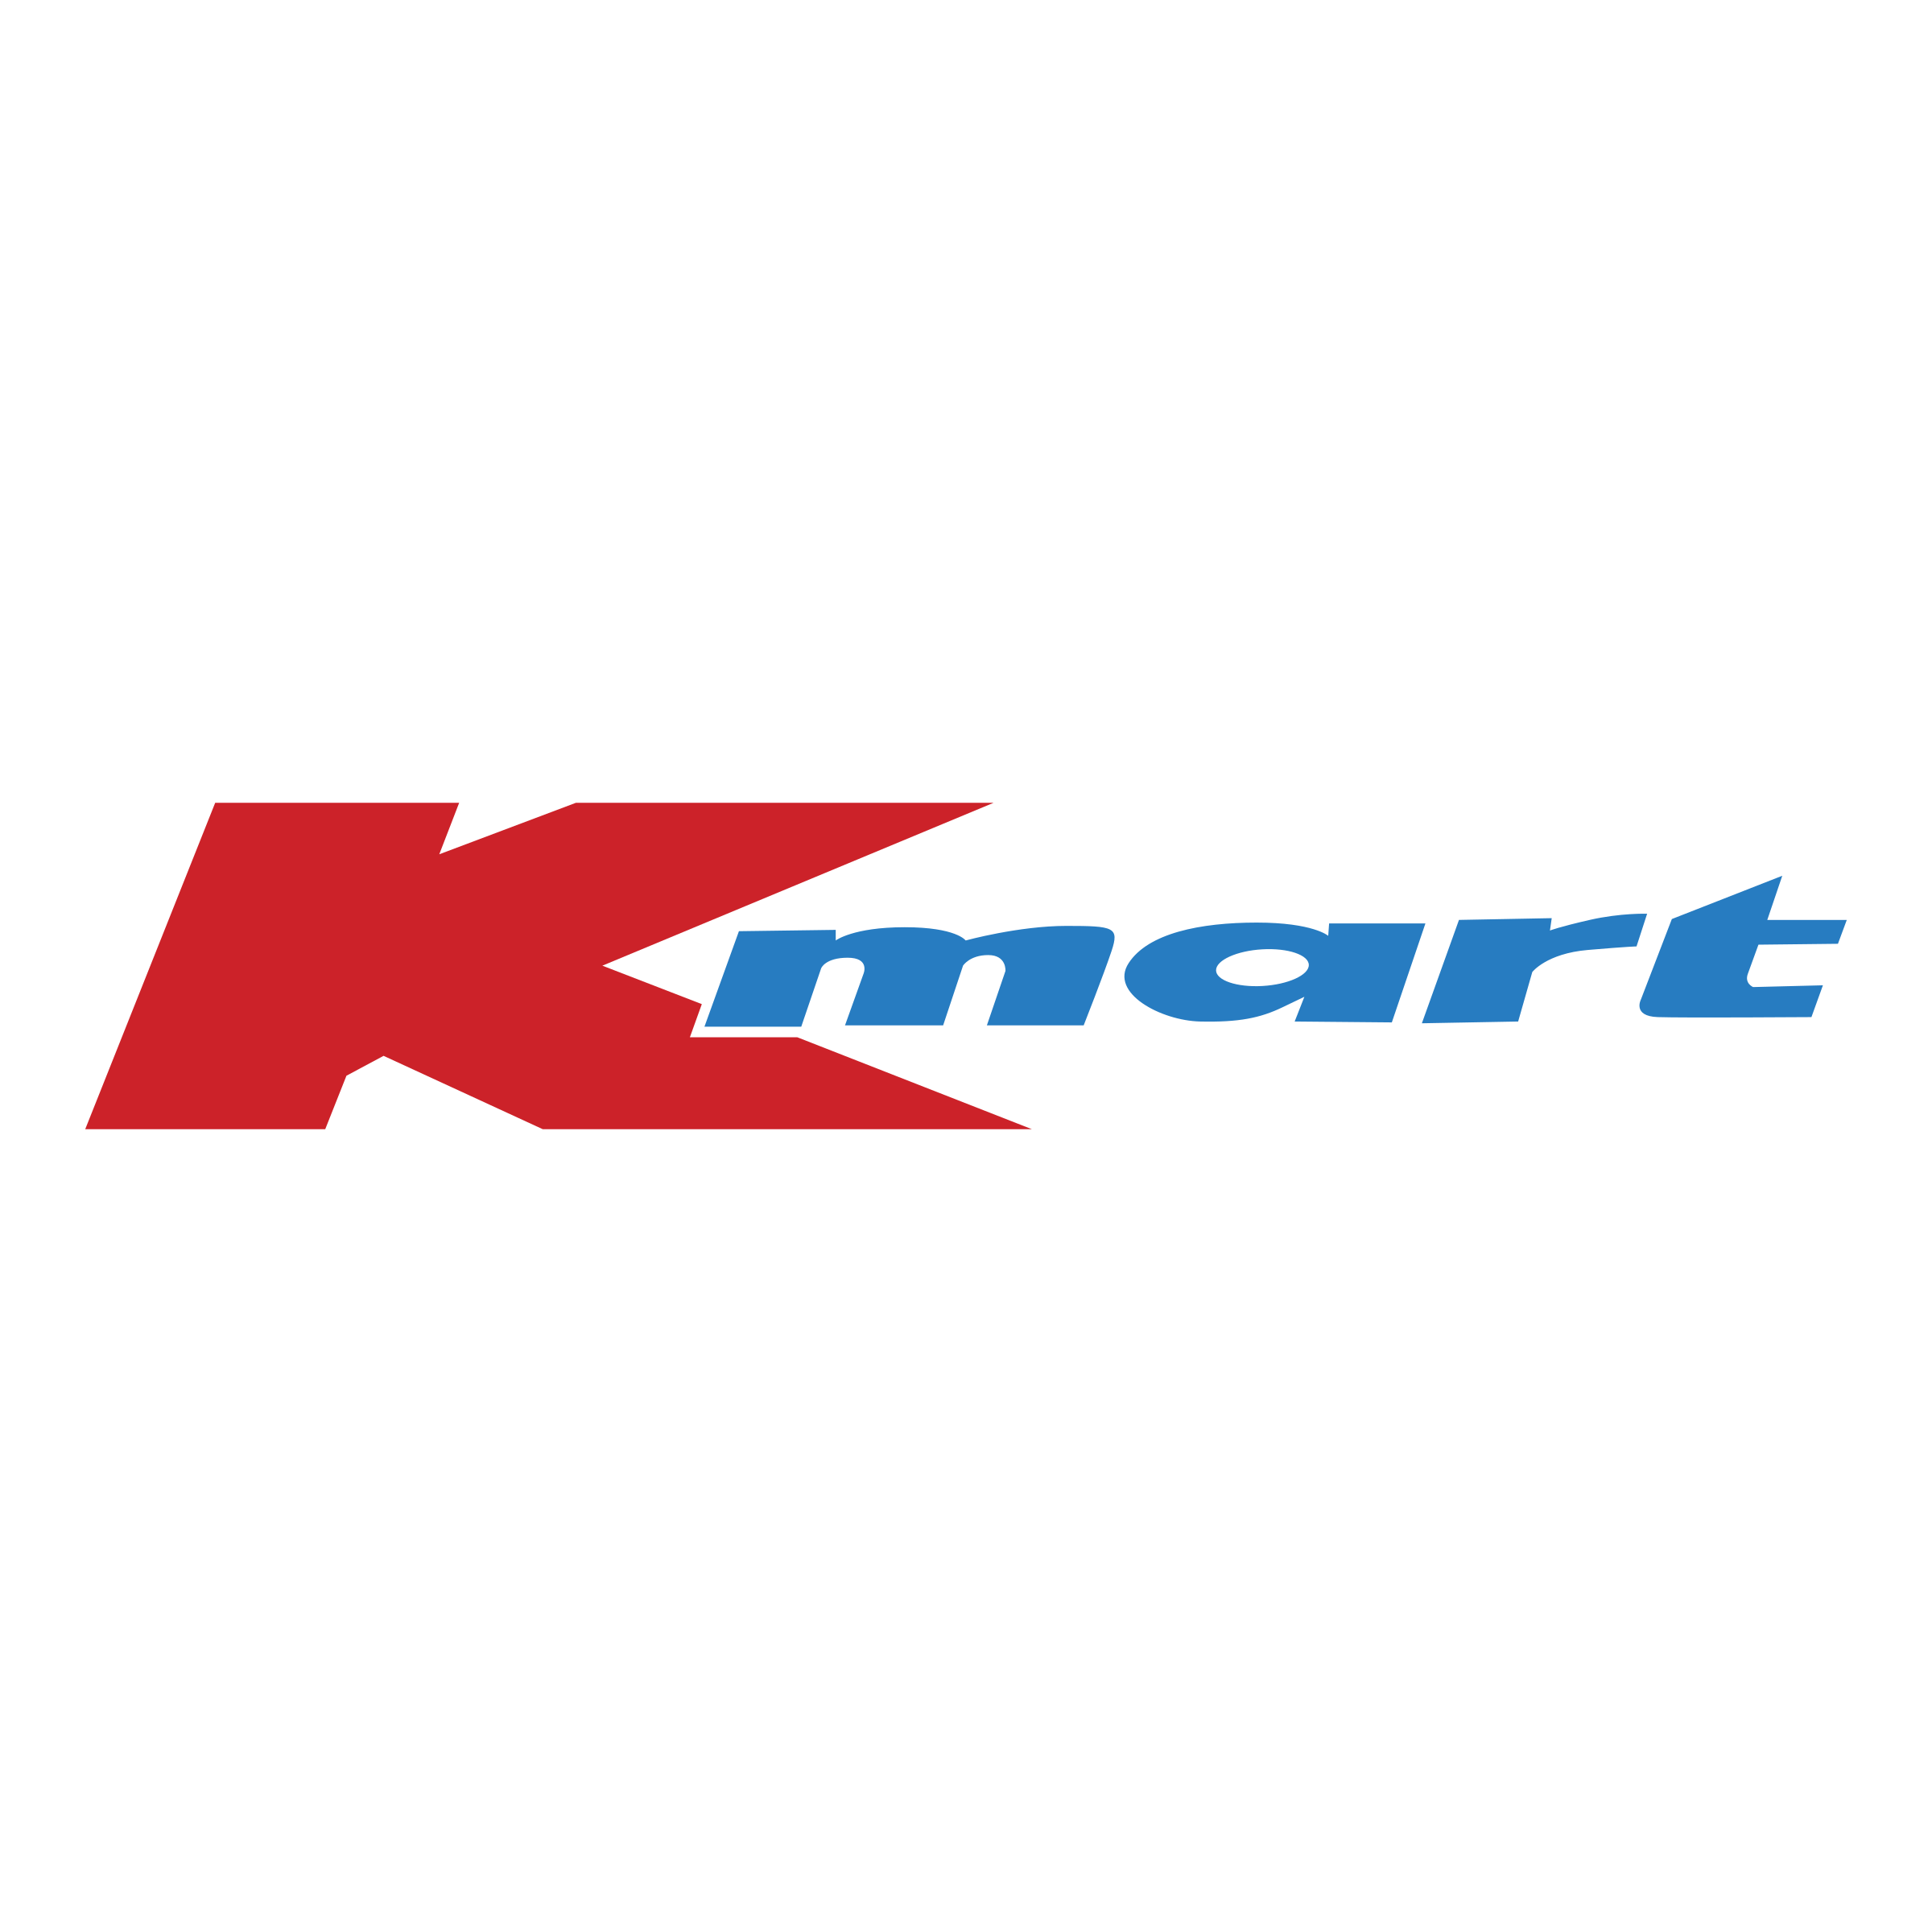 Kmart Logo PNG Transparent SVG Vector